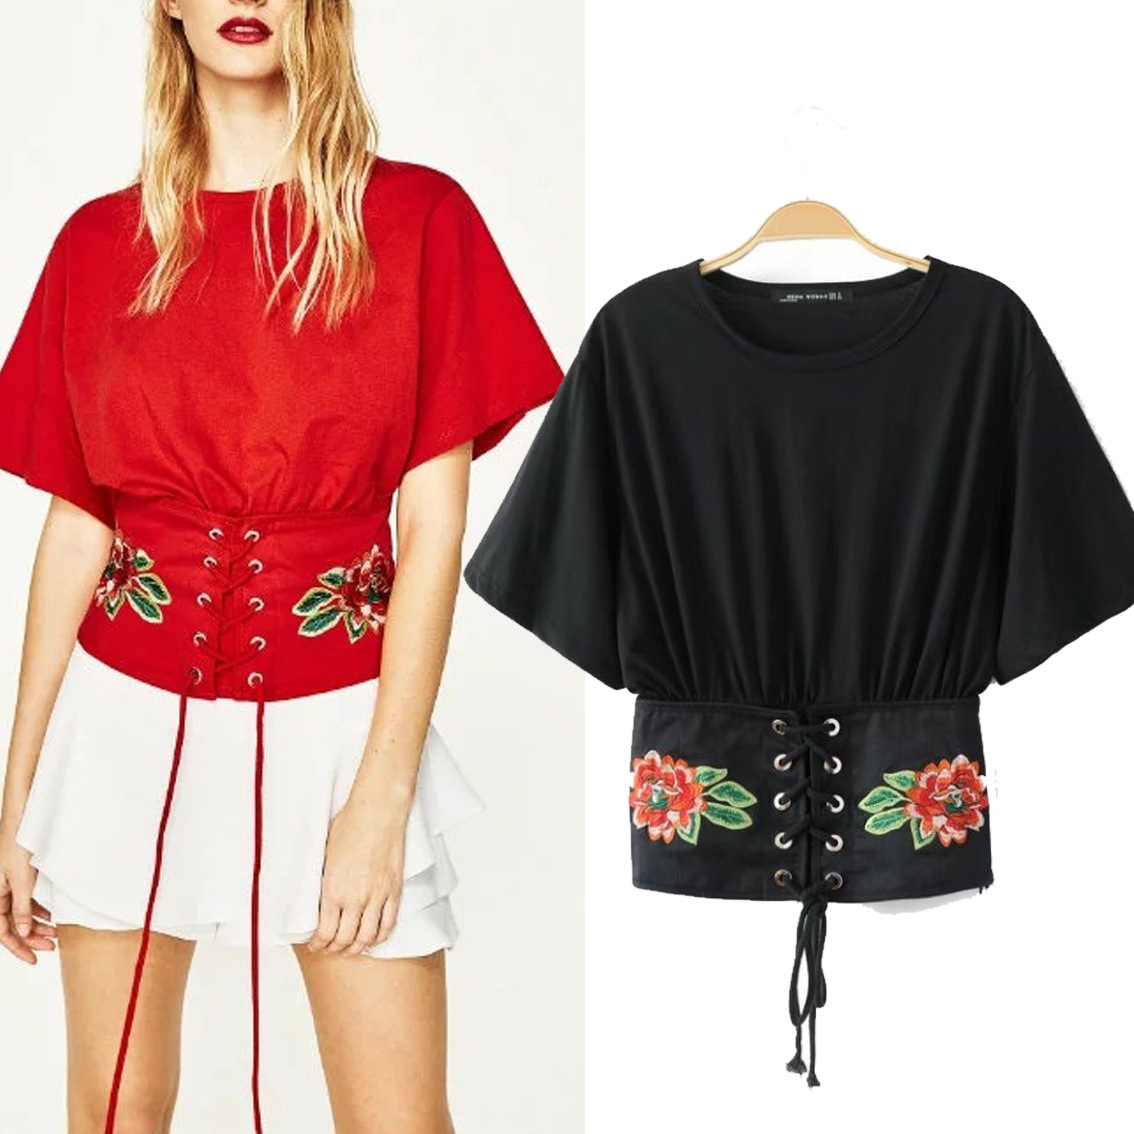 Aliexpress buy corset floral embroidery t shirt